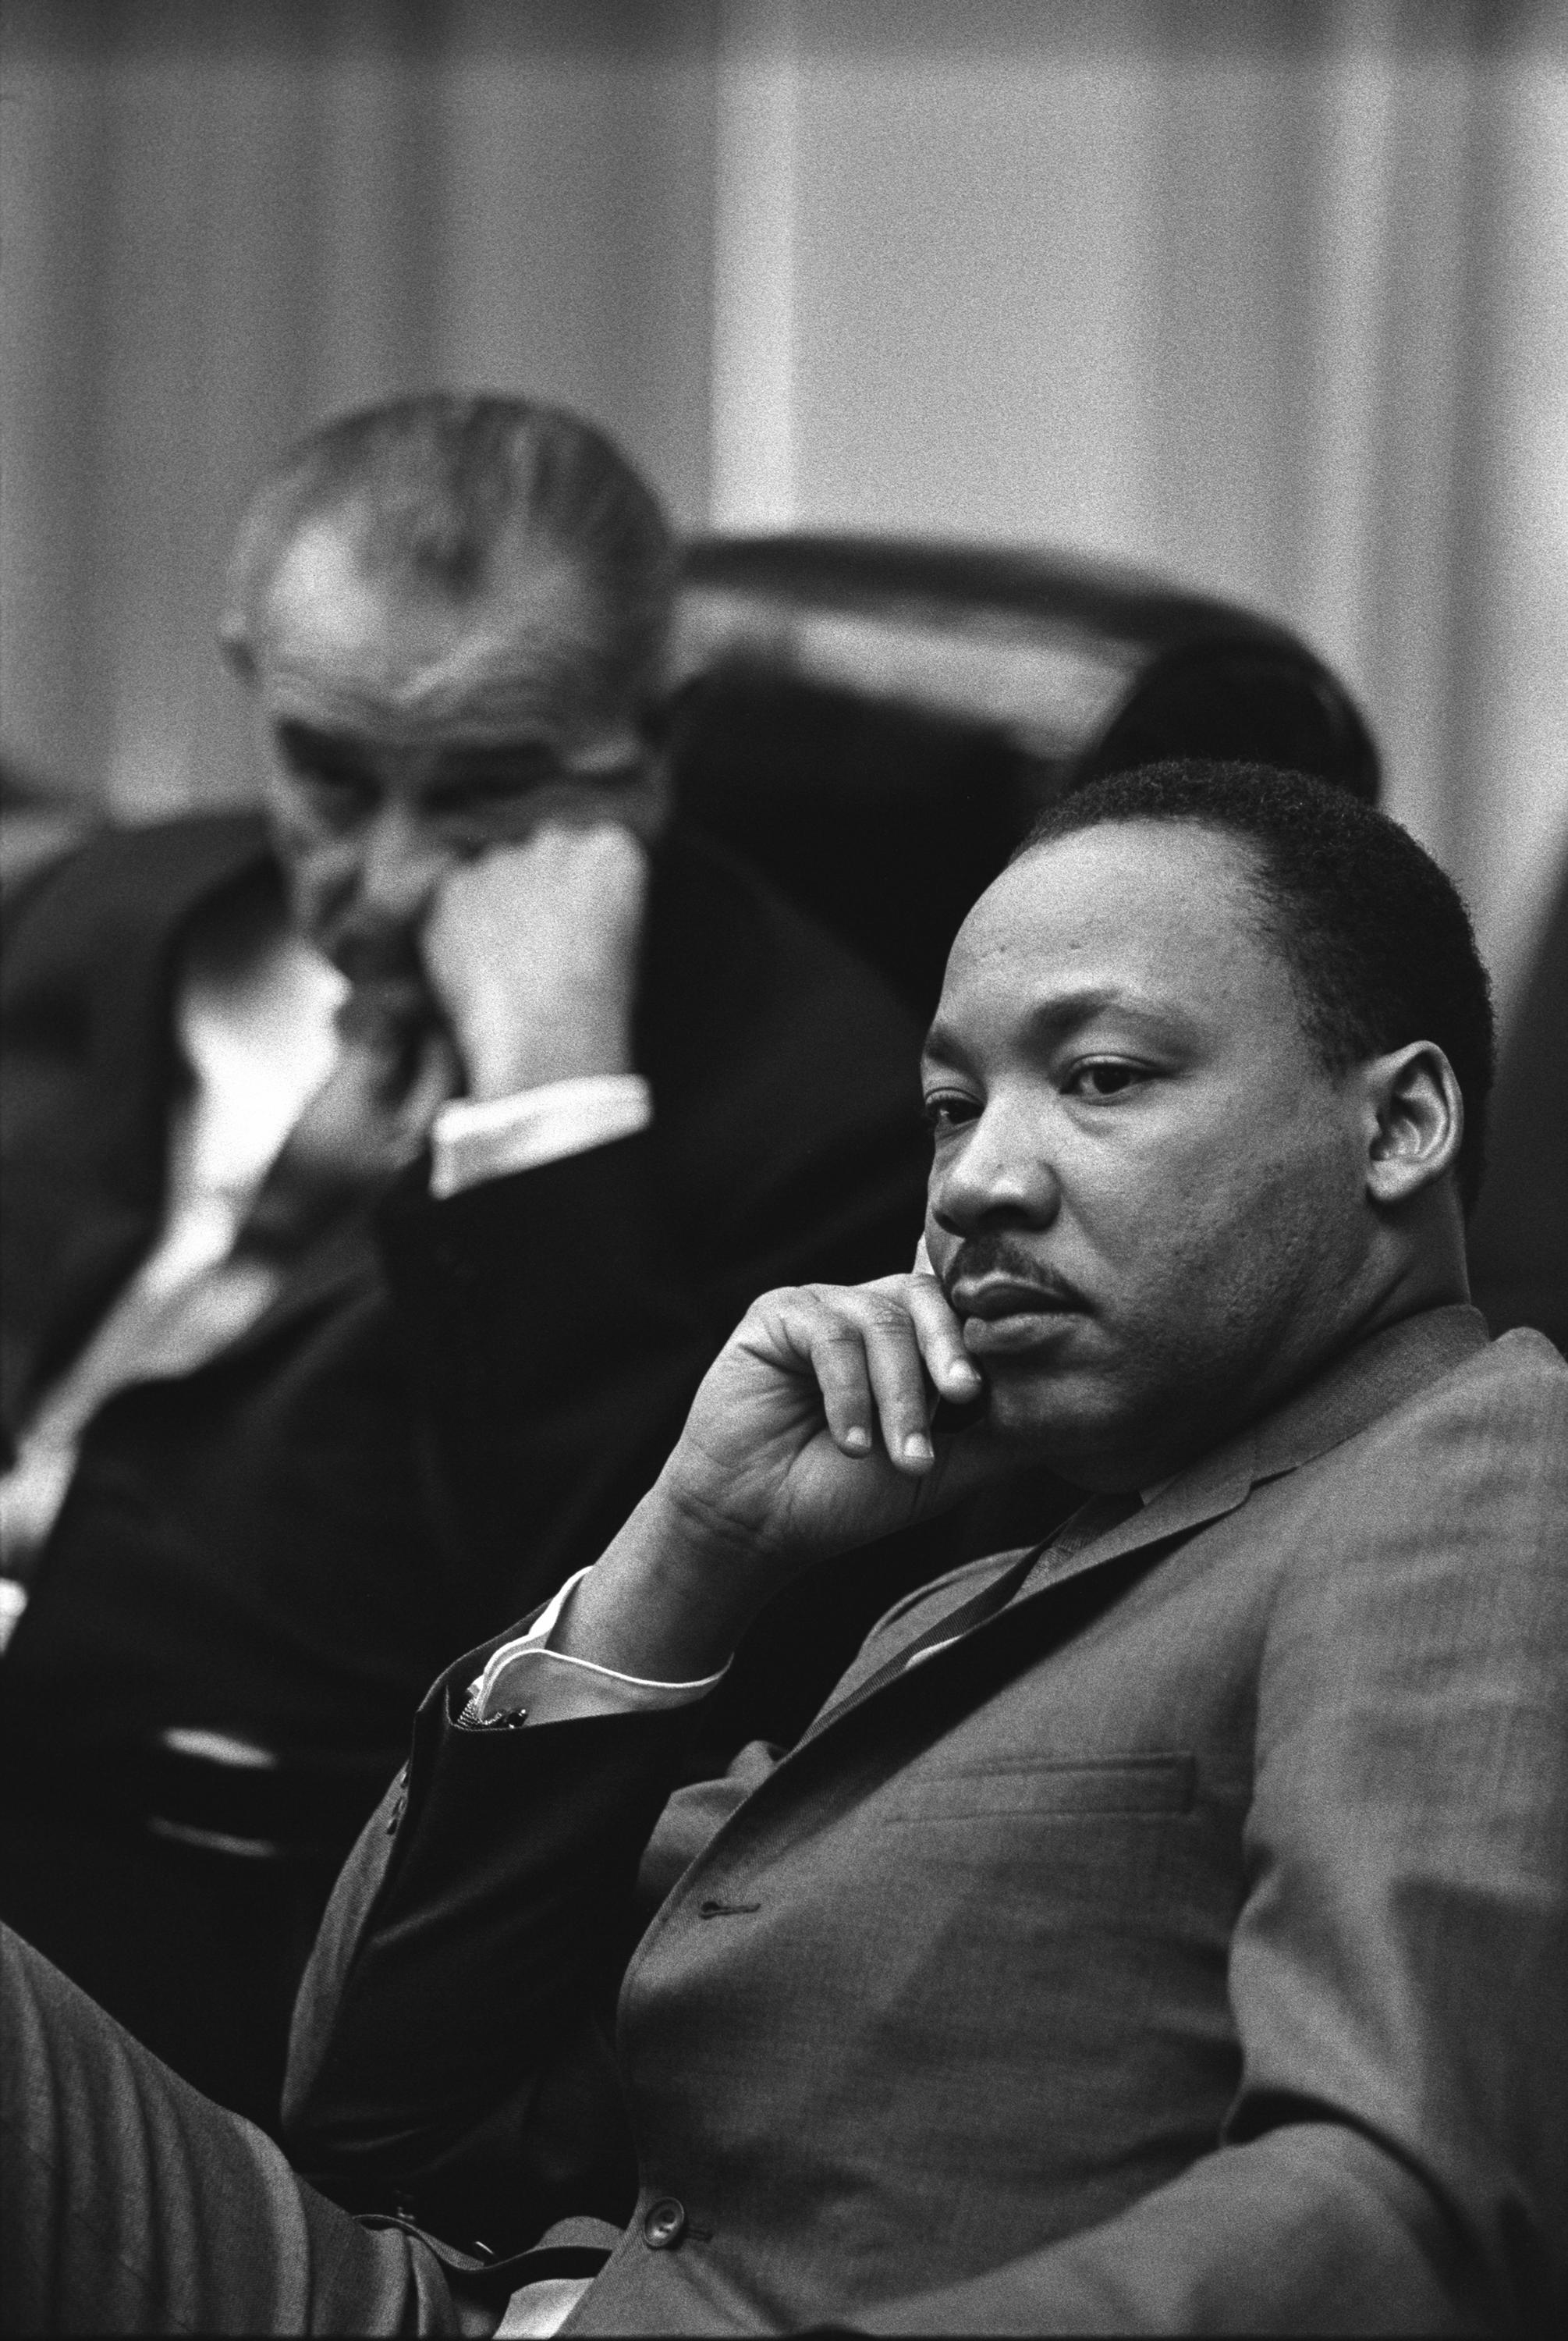 ENEMY OF THE STATE | Reverend Dr. Martin Luther King Jr. | Public Domain Photo Courtesy of Lyndon Baines Johnson Library and Museum